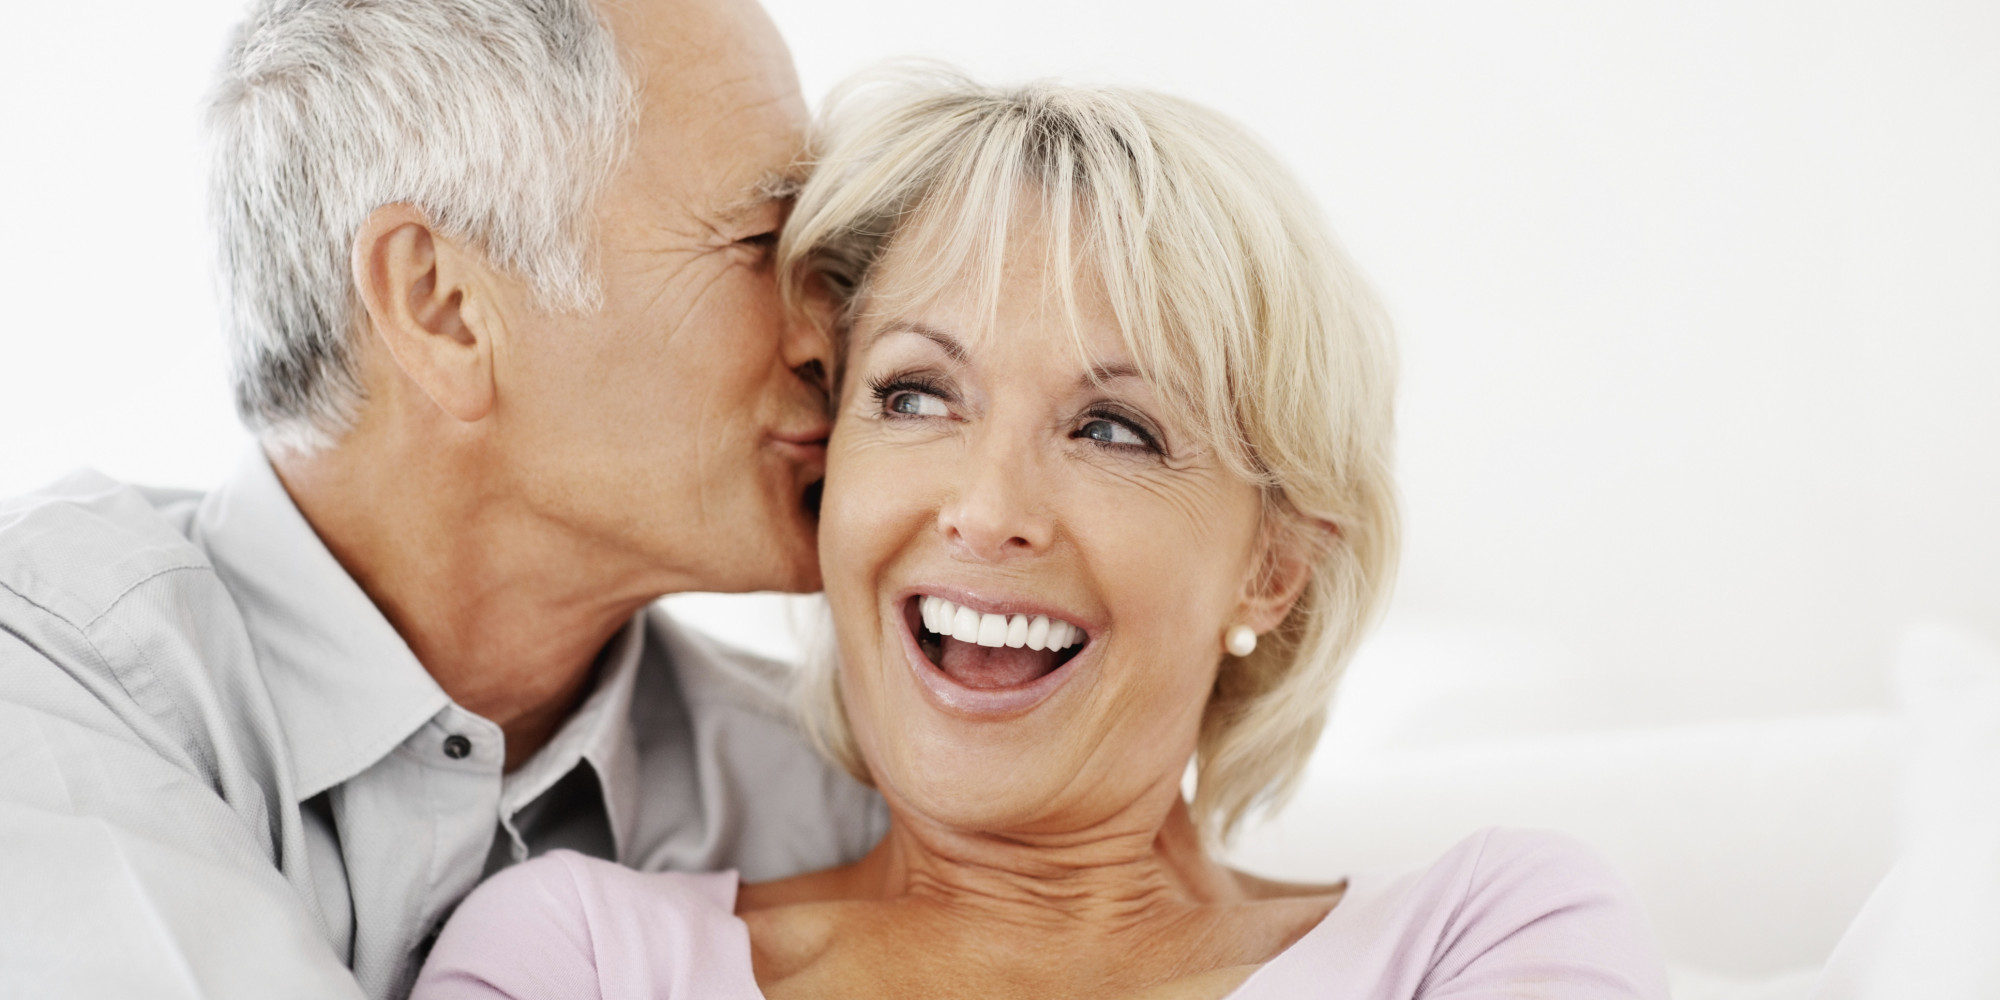 online dating website for middle aged fat male #2 millionairematchcom on the 2nd place, we have to mention millionairematch, one of the most exceptional over 40 dating sites it ended on this spot because a very large part of its users, approximately 75%, are high-quality members.